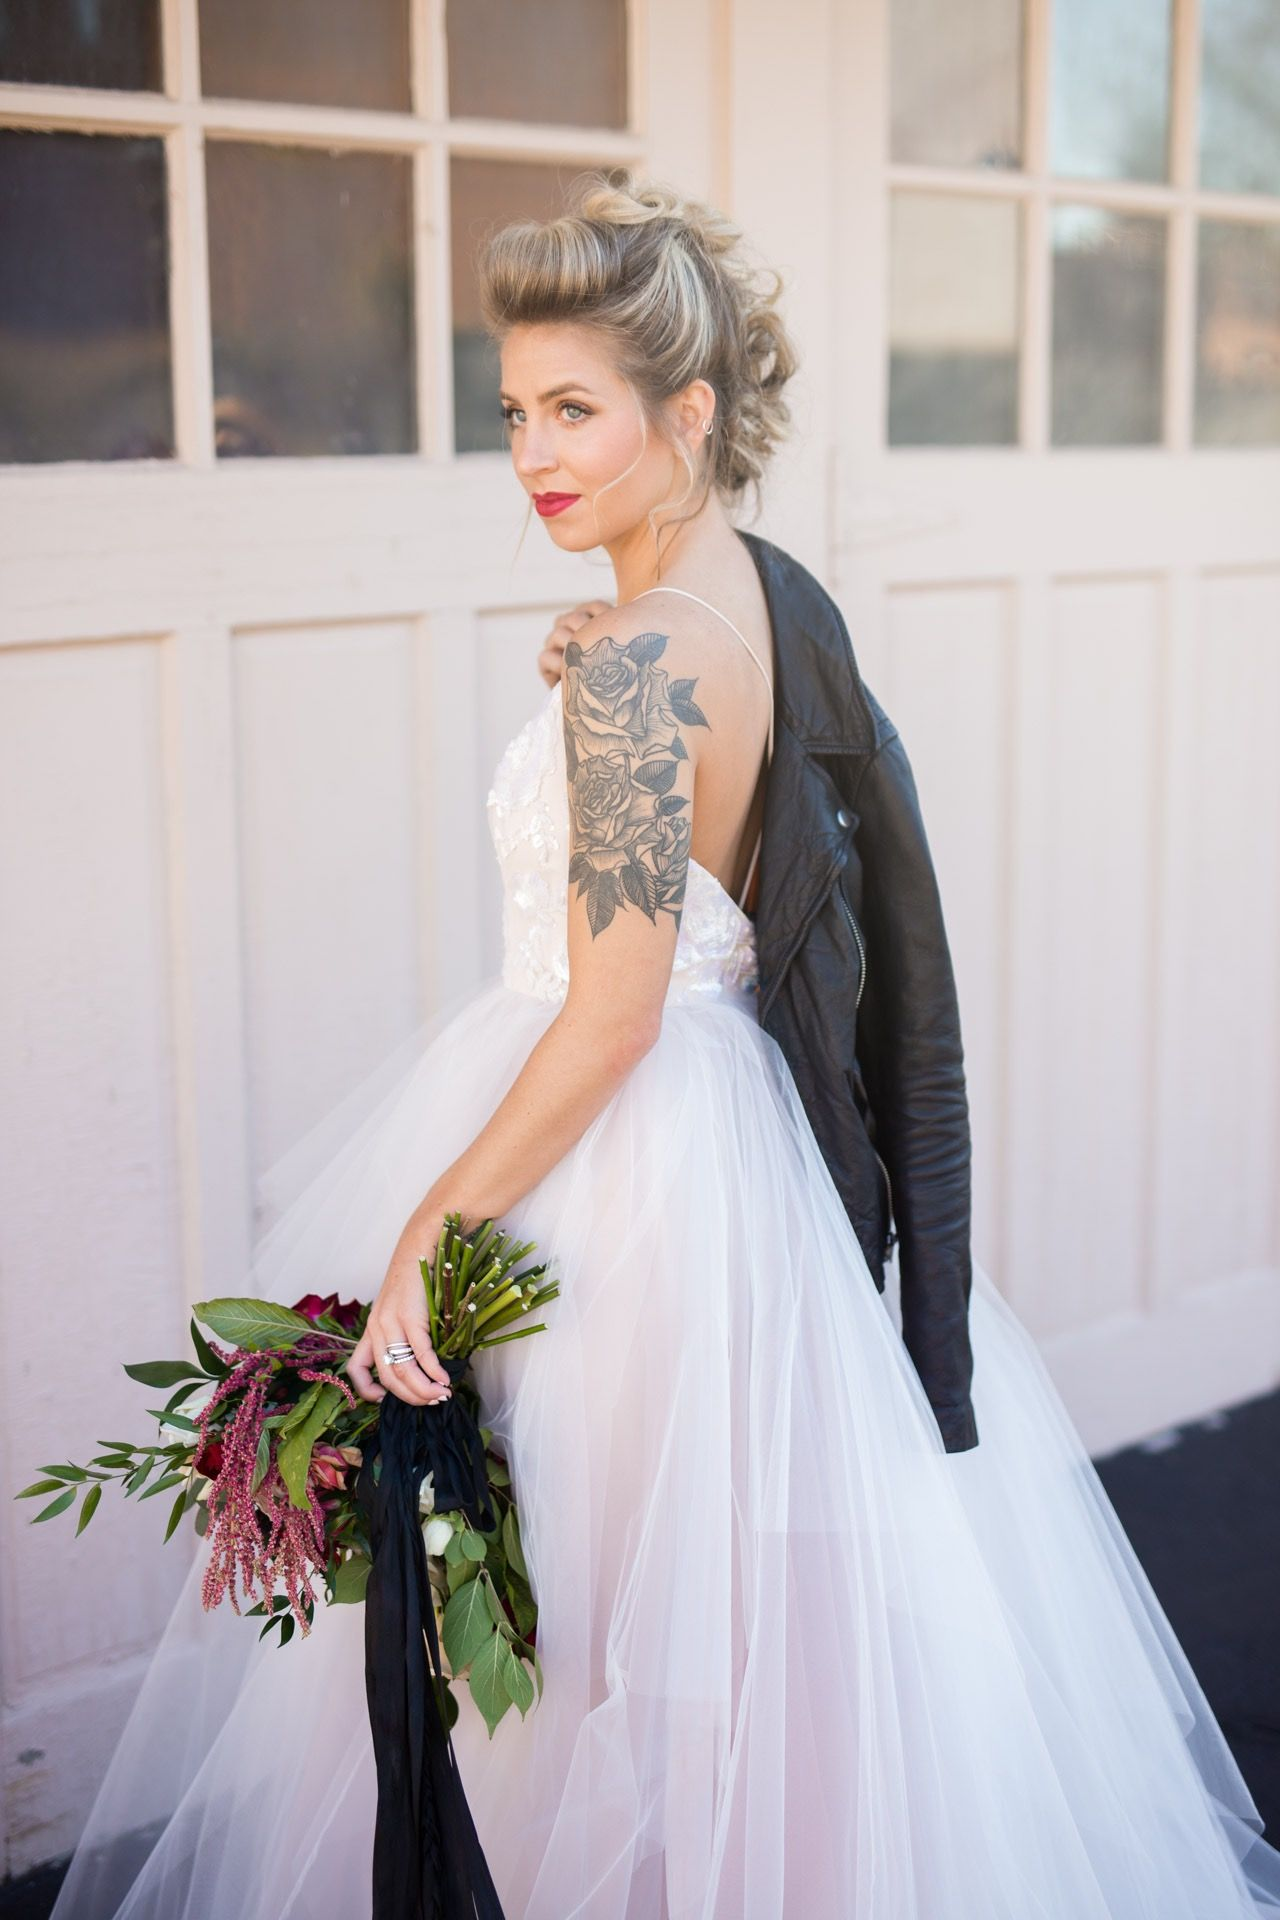 Edgy wedding dresses  Sweet and Edgy Romance Wedding Inspiration  Romance Wedding and